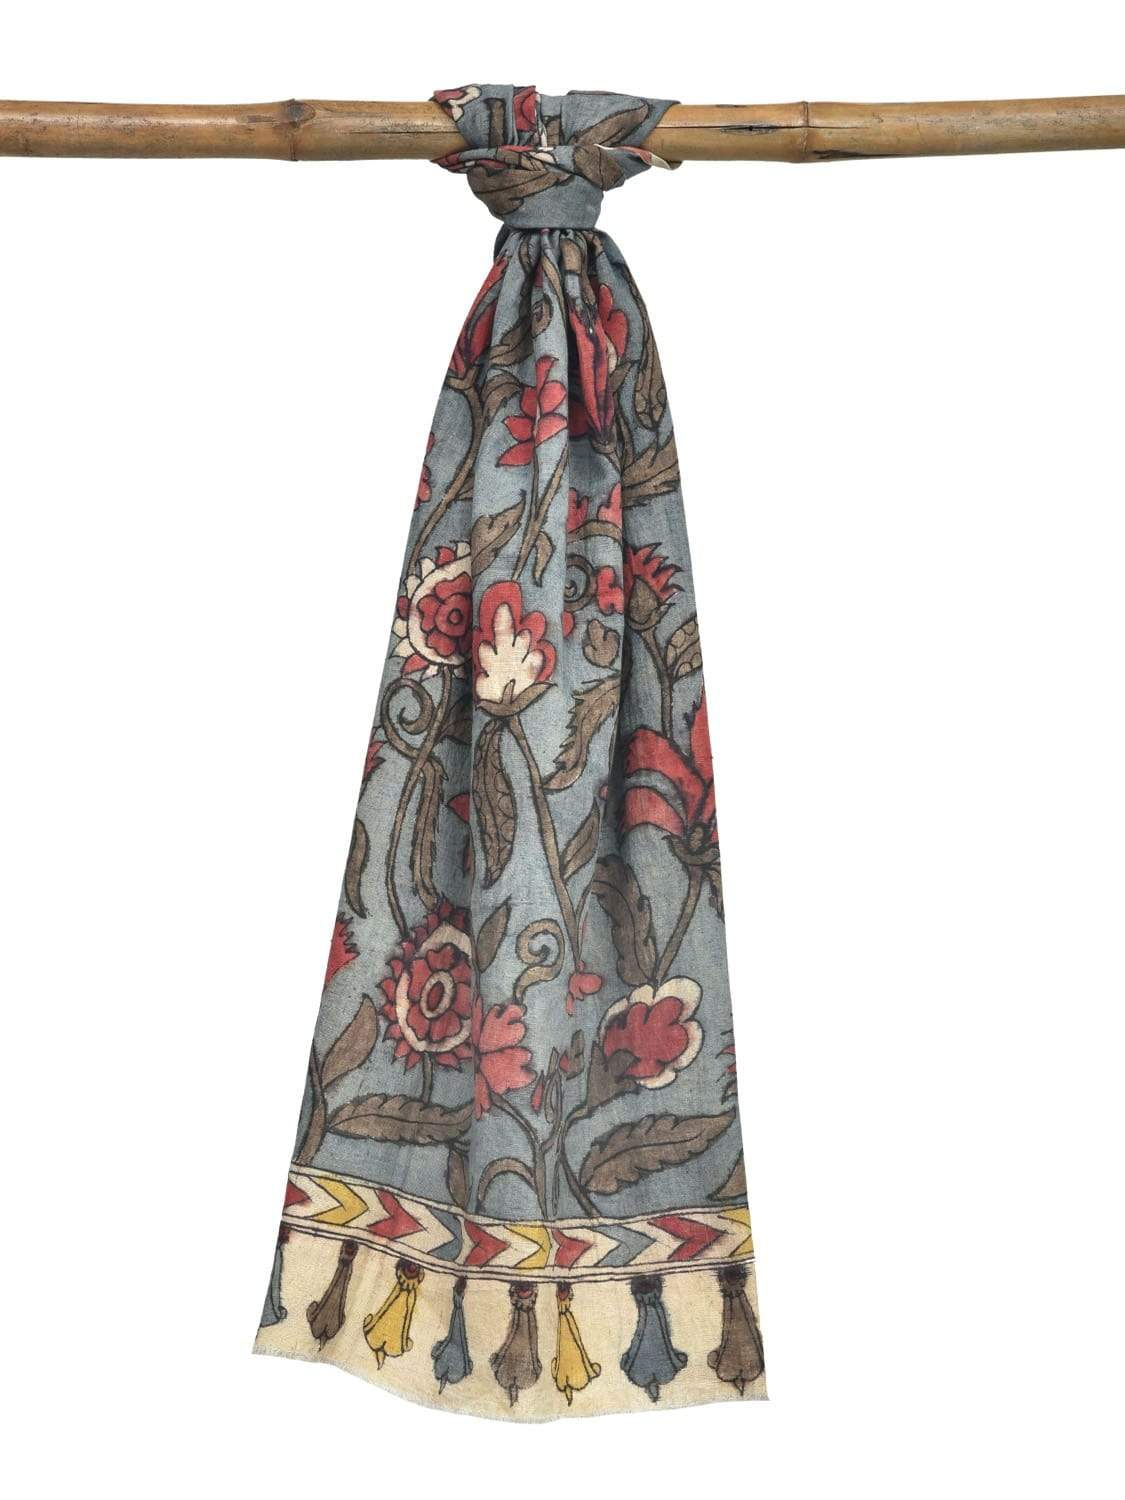 Blue Kalamkari Hand Painted Cotton Handloom Stole with Floral Design ds1919